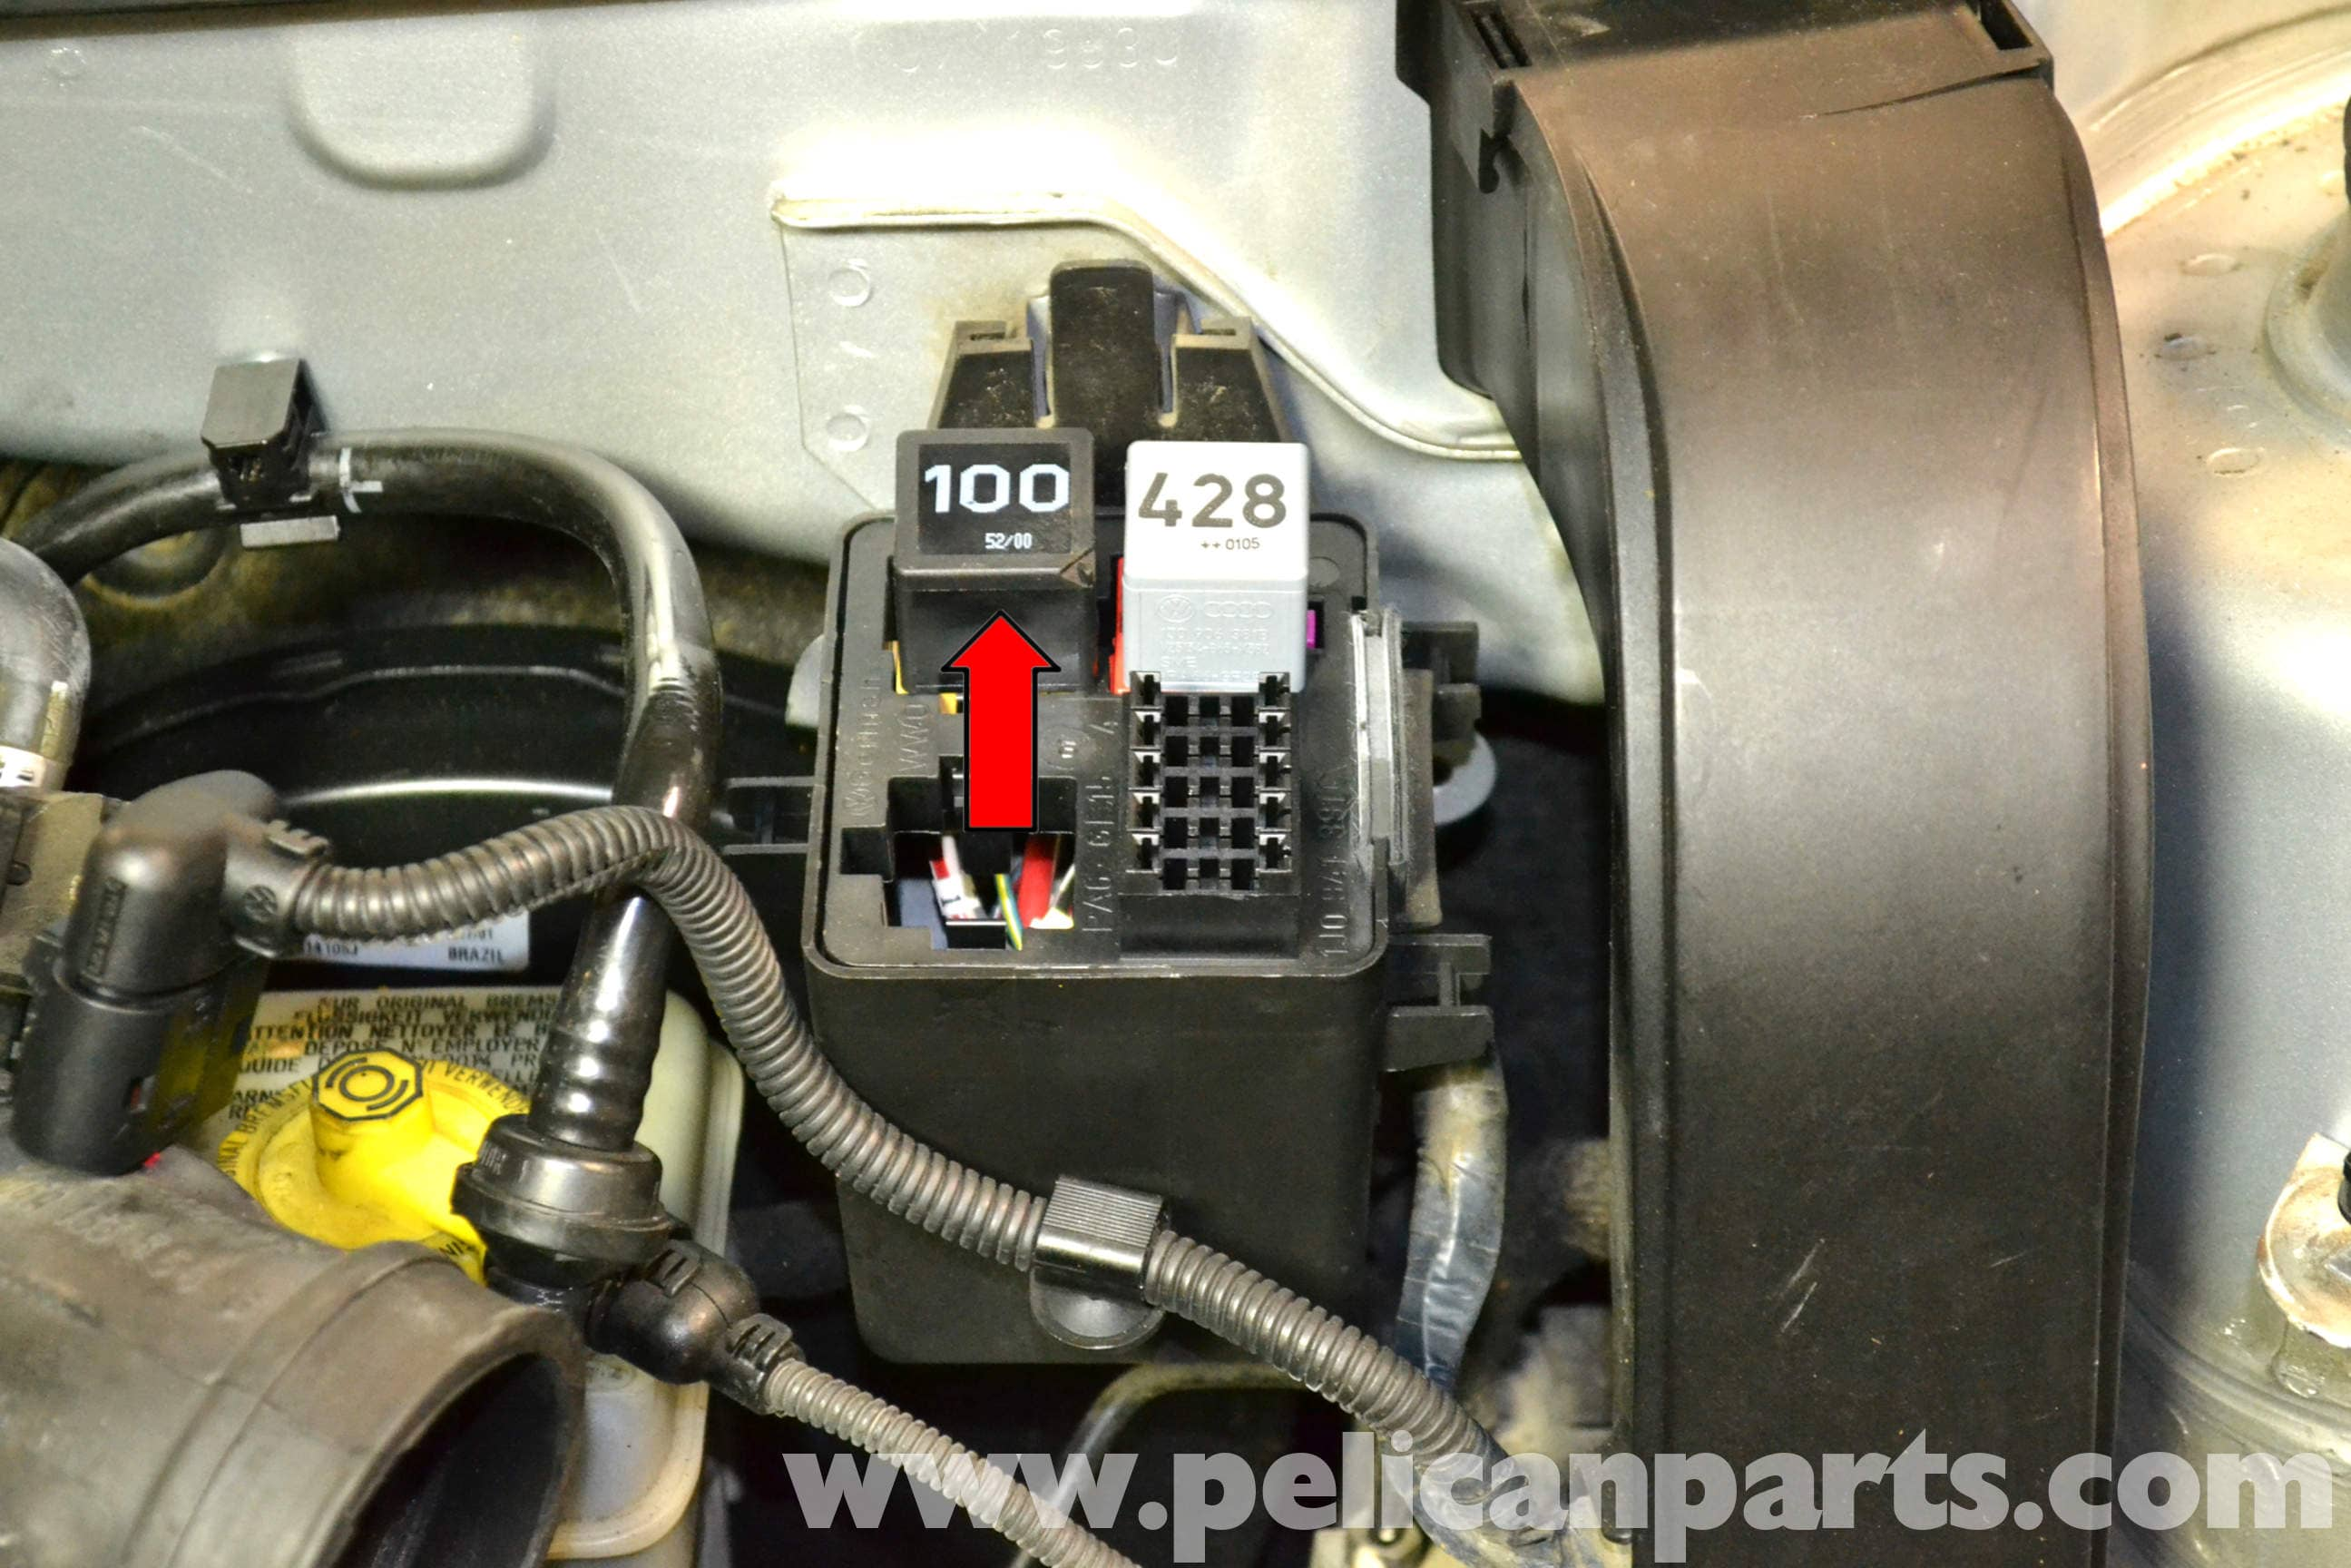 2008 Vw Fuse Box Control Wiring Diagram Touareg Location Volkswagen Golf Gti Mk Iv Auxiliary Air Pump And Hose Rabbit